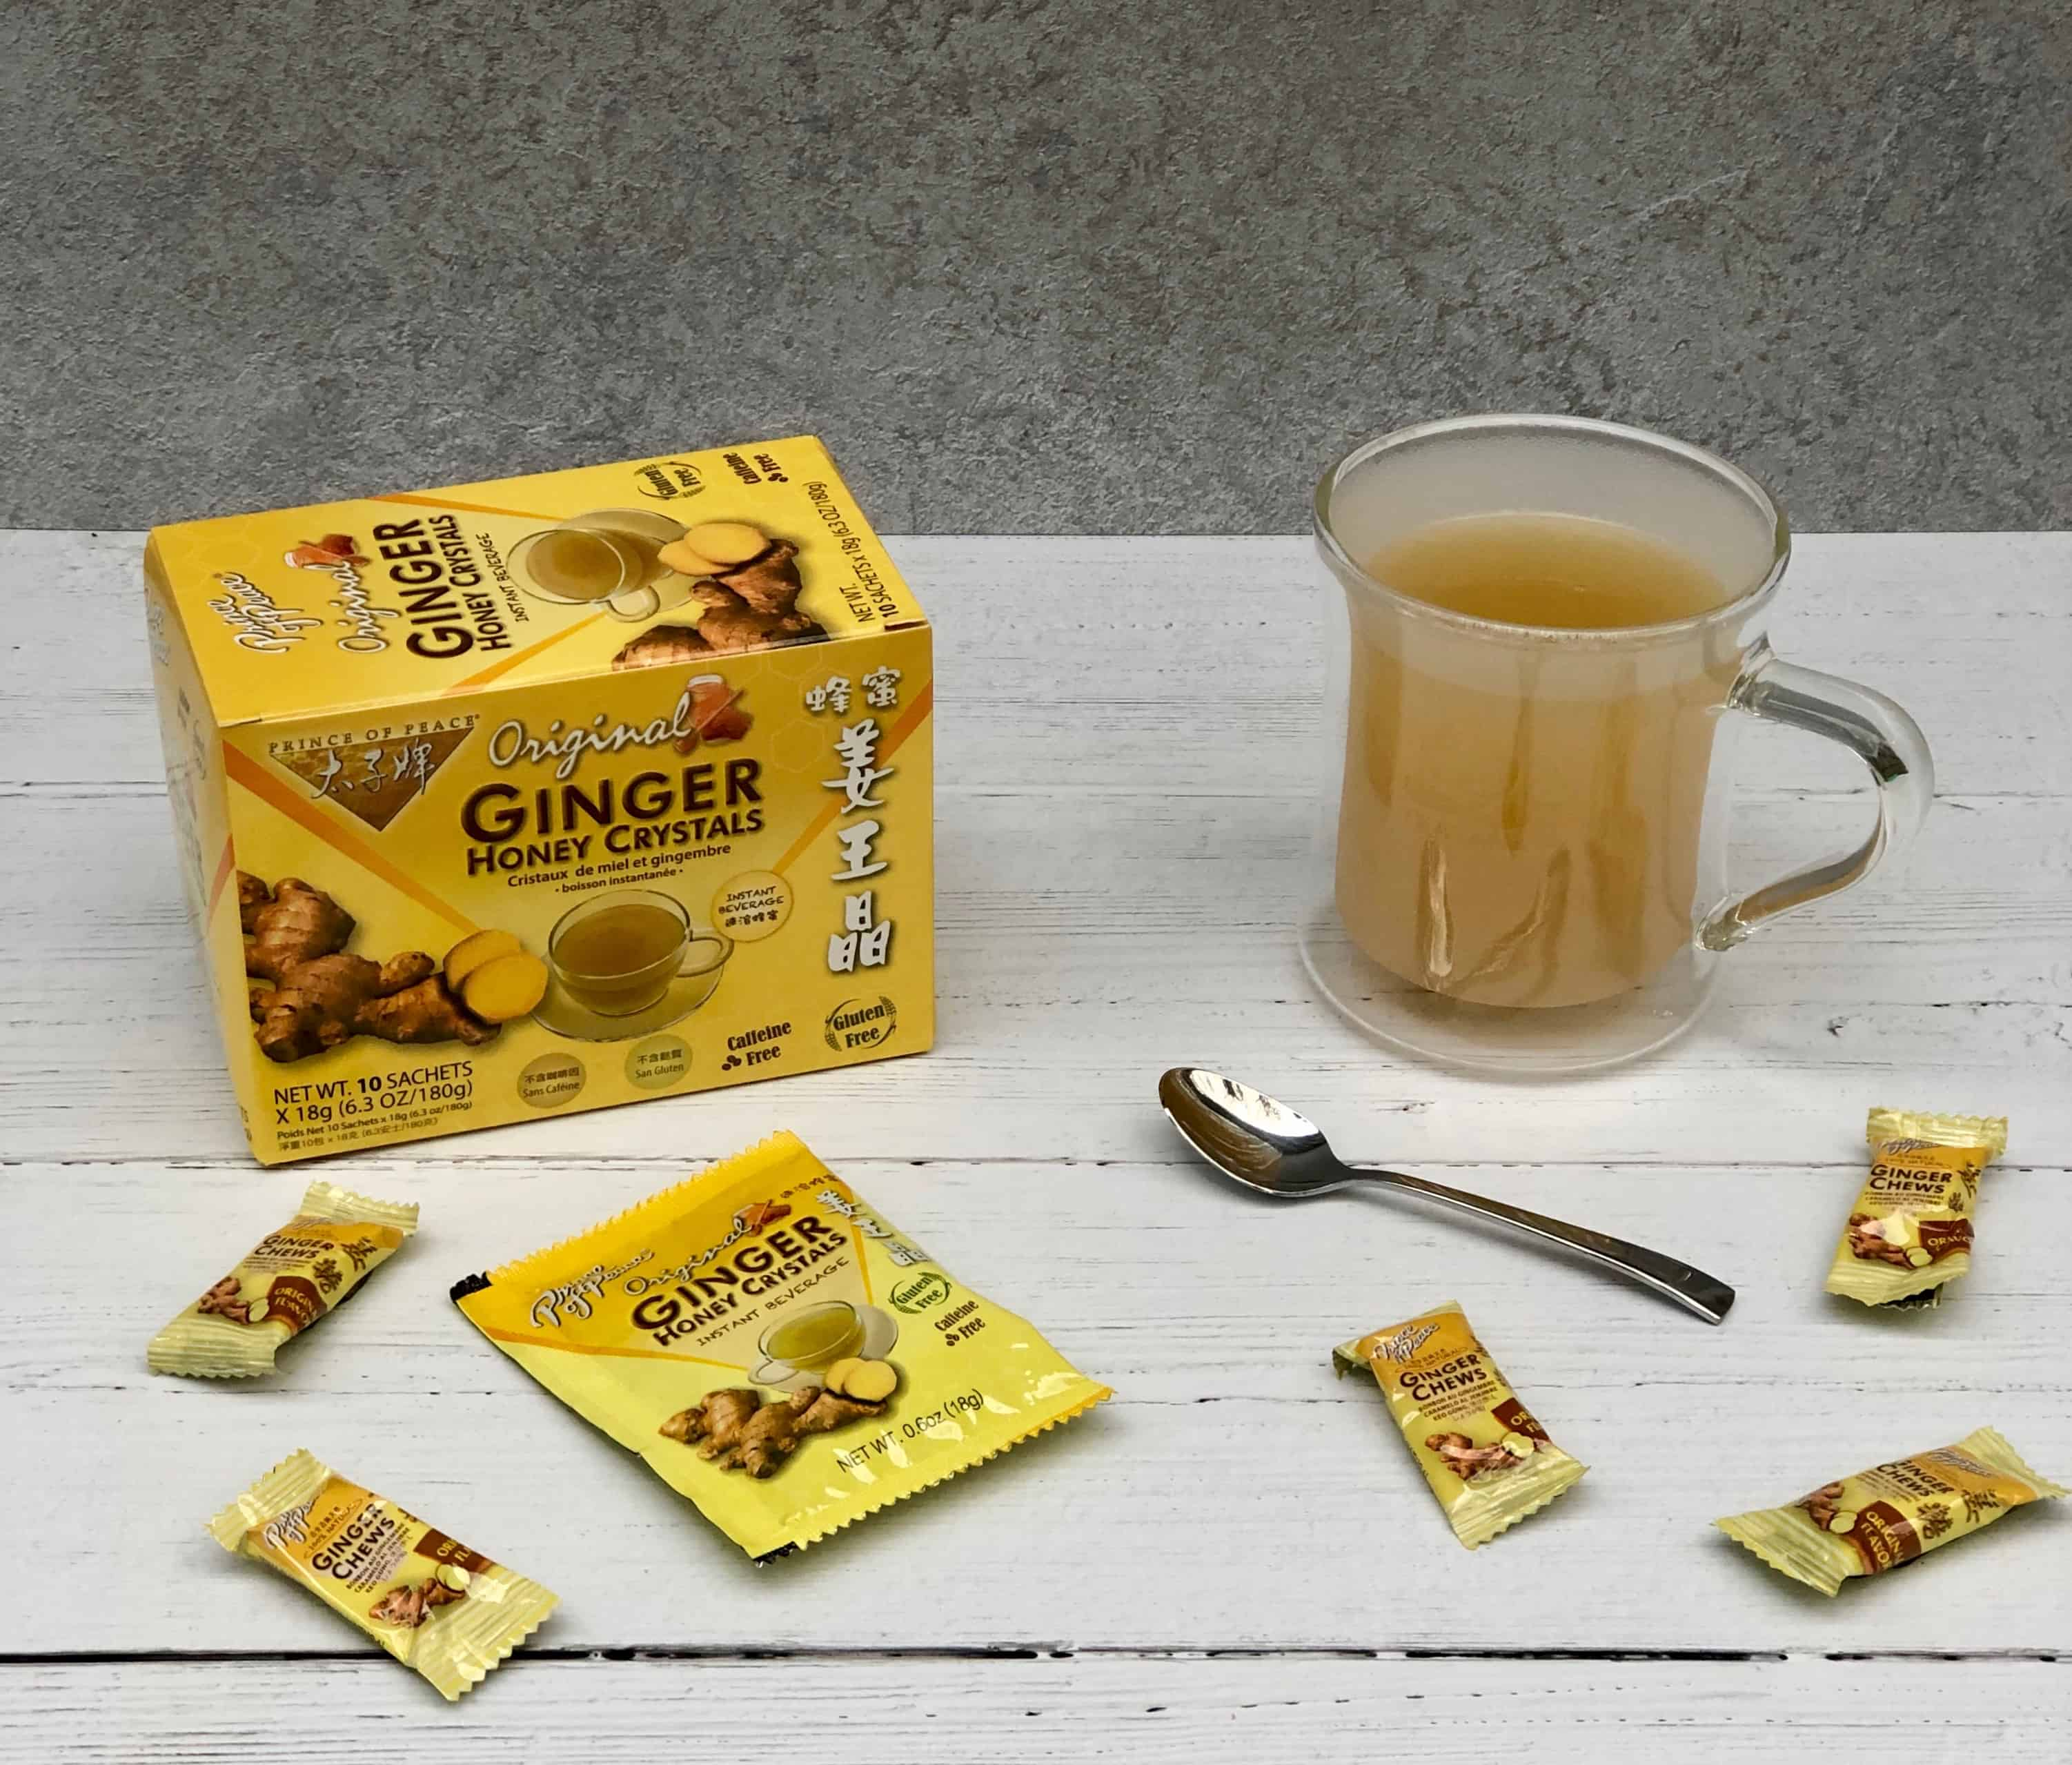 Ginger Chews and Ginger Honey Crystals and hot ginger tea on white background